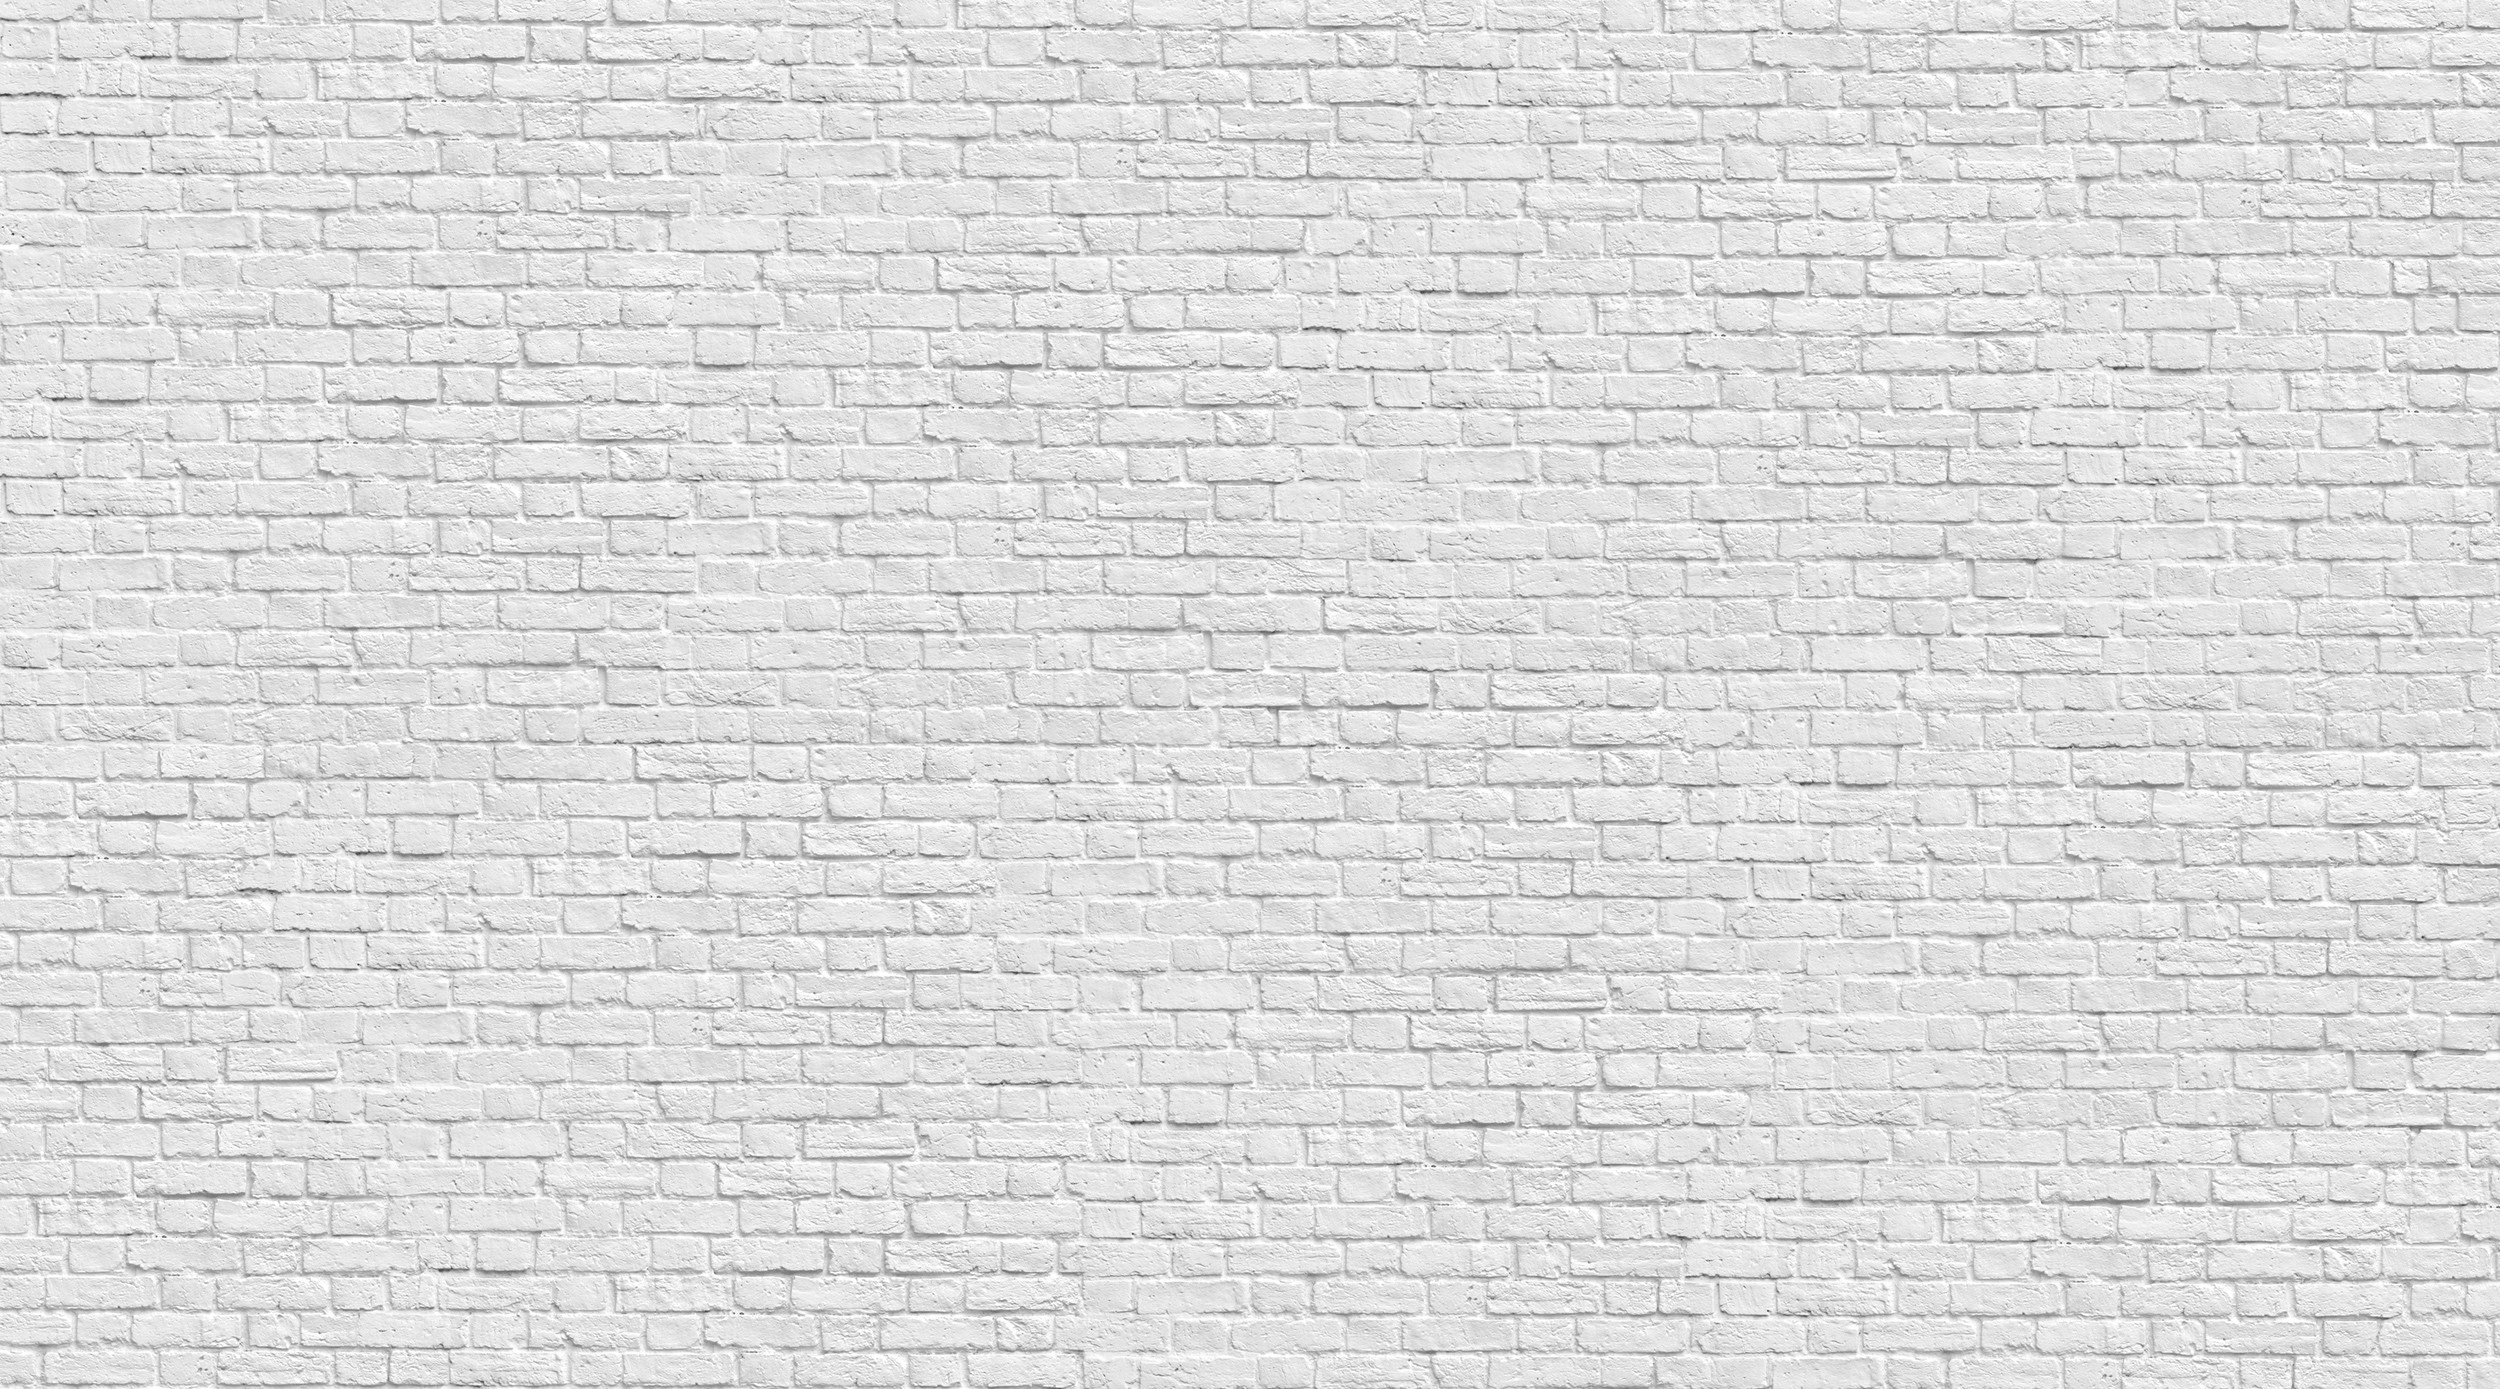 3d Wallpaper White Brick White Brick Wallpaper 183 ① Download Free Awesome High